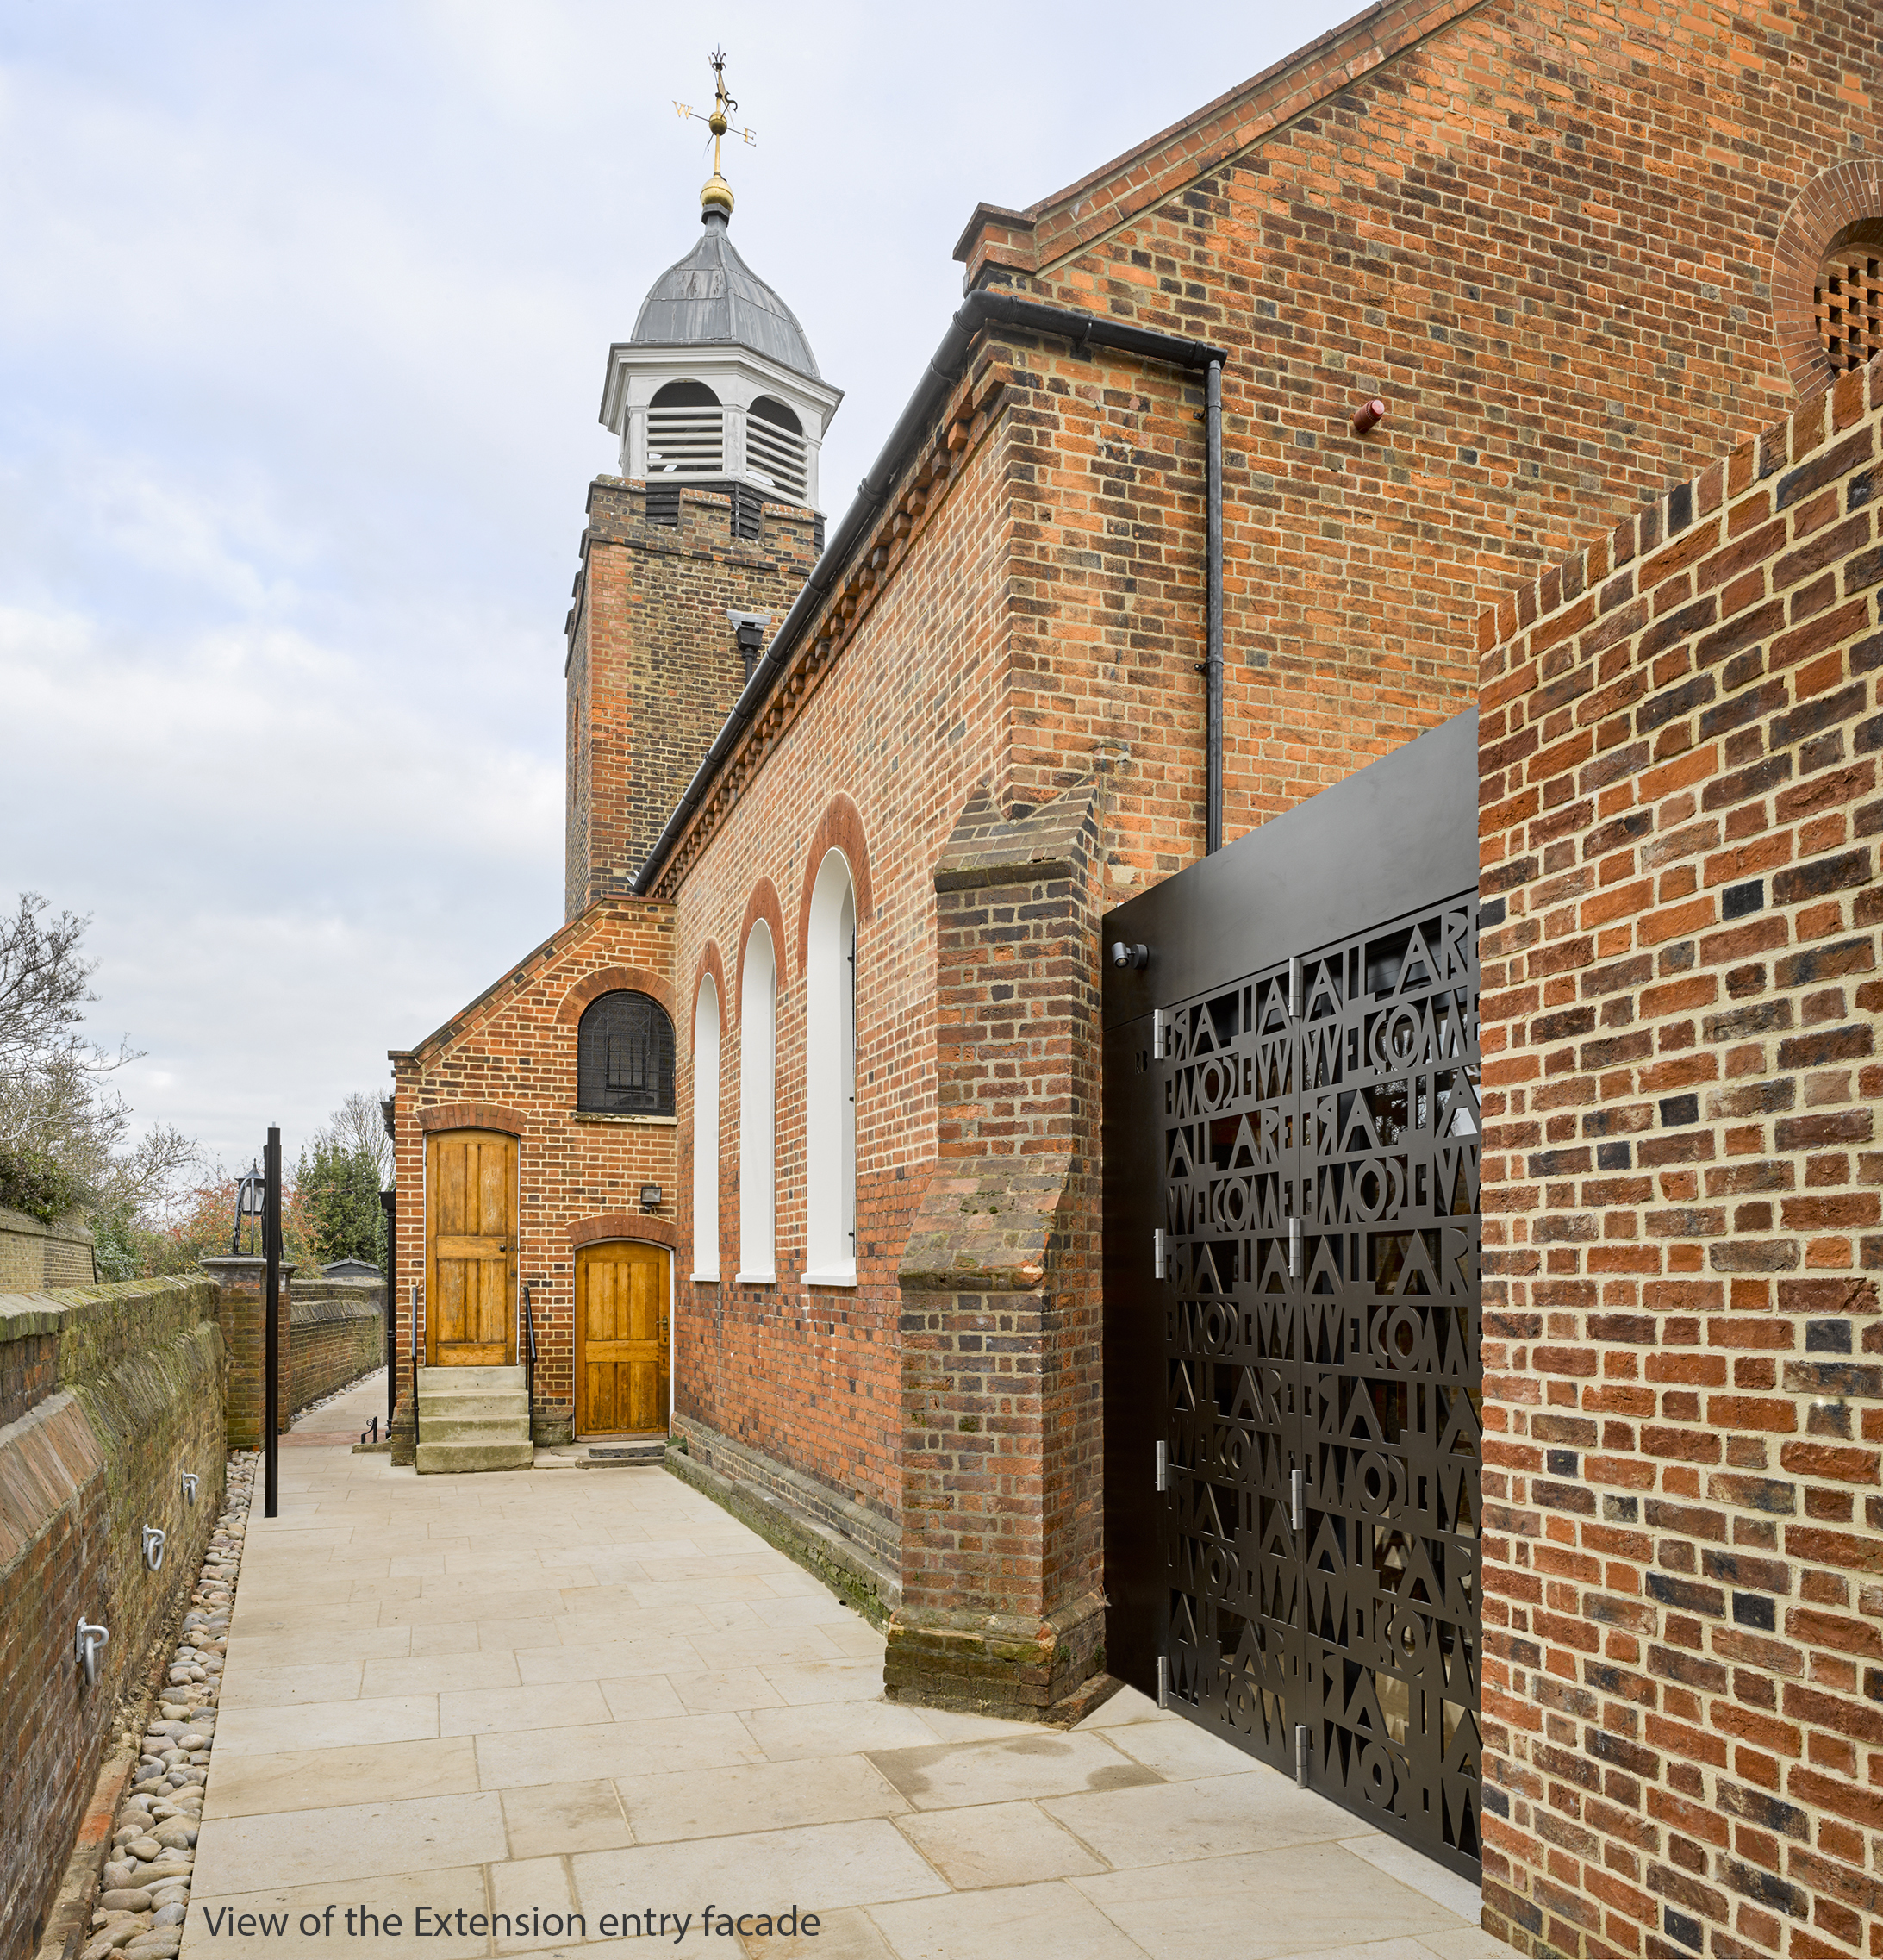 Presidents Award 2019 Shortlist - St Peter's church, Petersham